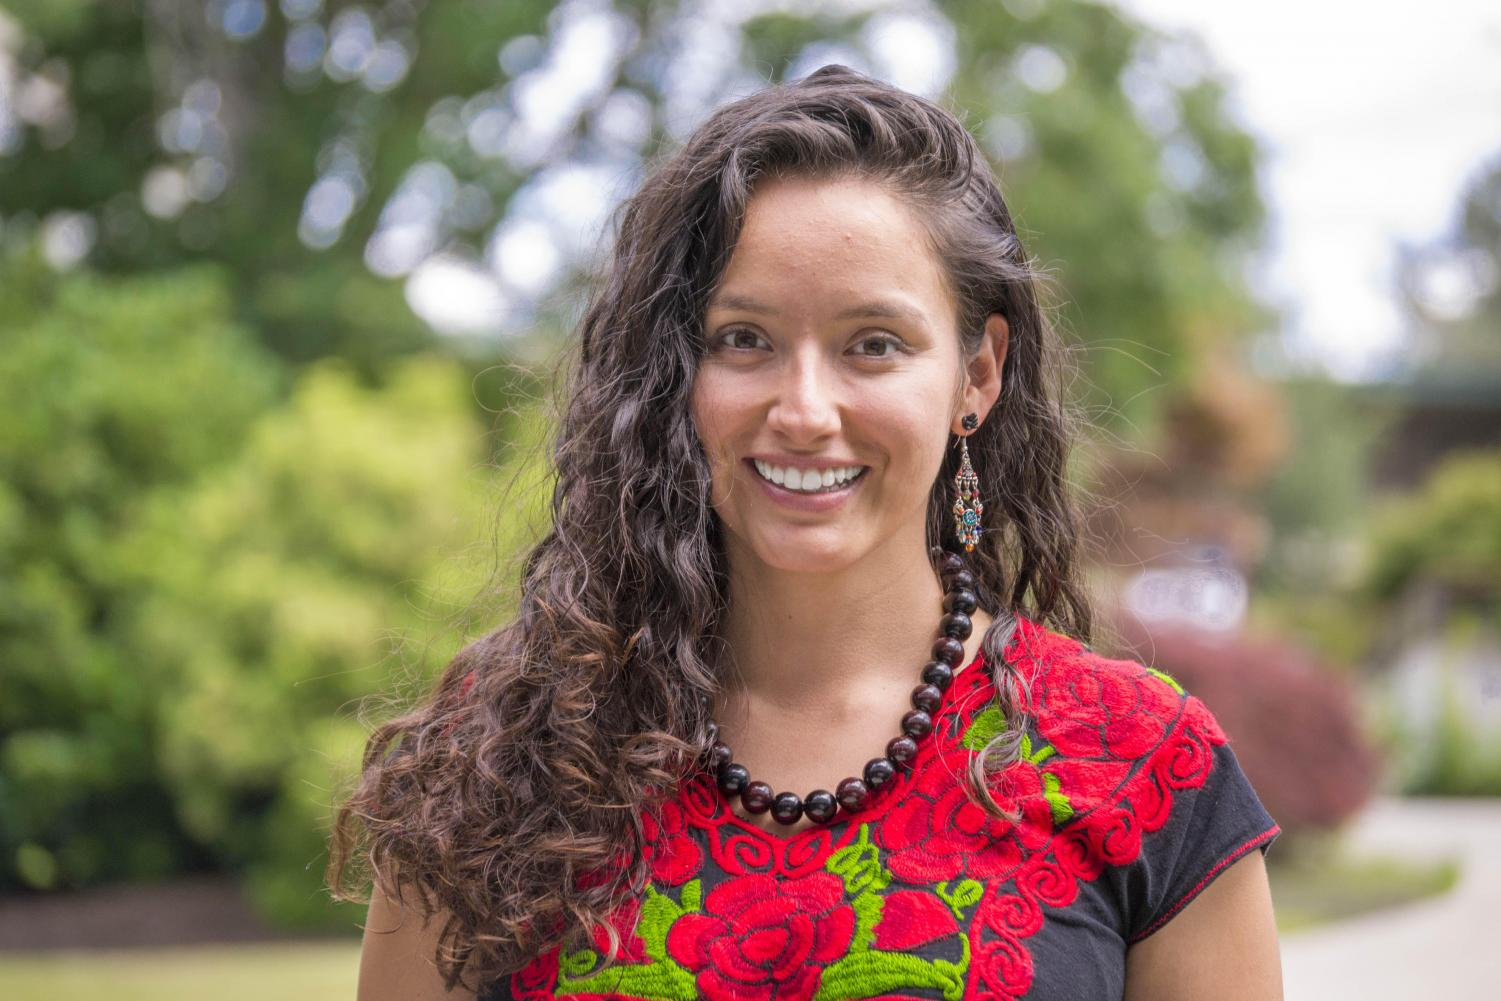 Ambar Martinez, EvCC's previous Interim Director of the Academy for Social Change and Community Transformation, has stepped down from her position and plans to continue her efforts of community transformation.